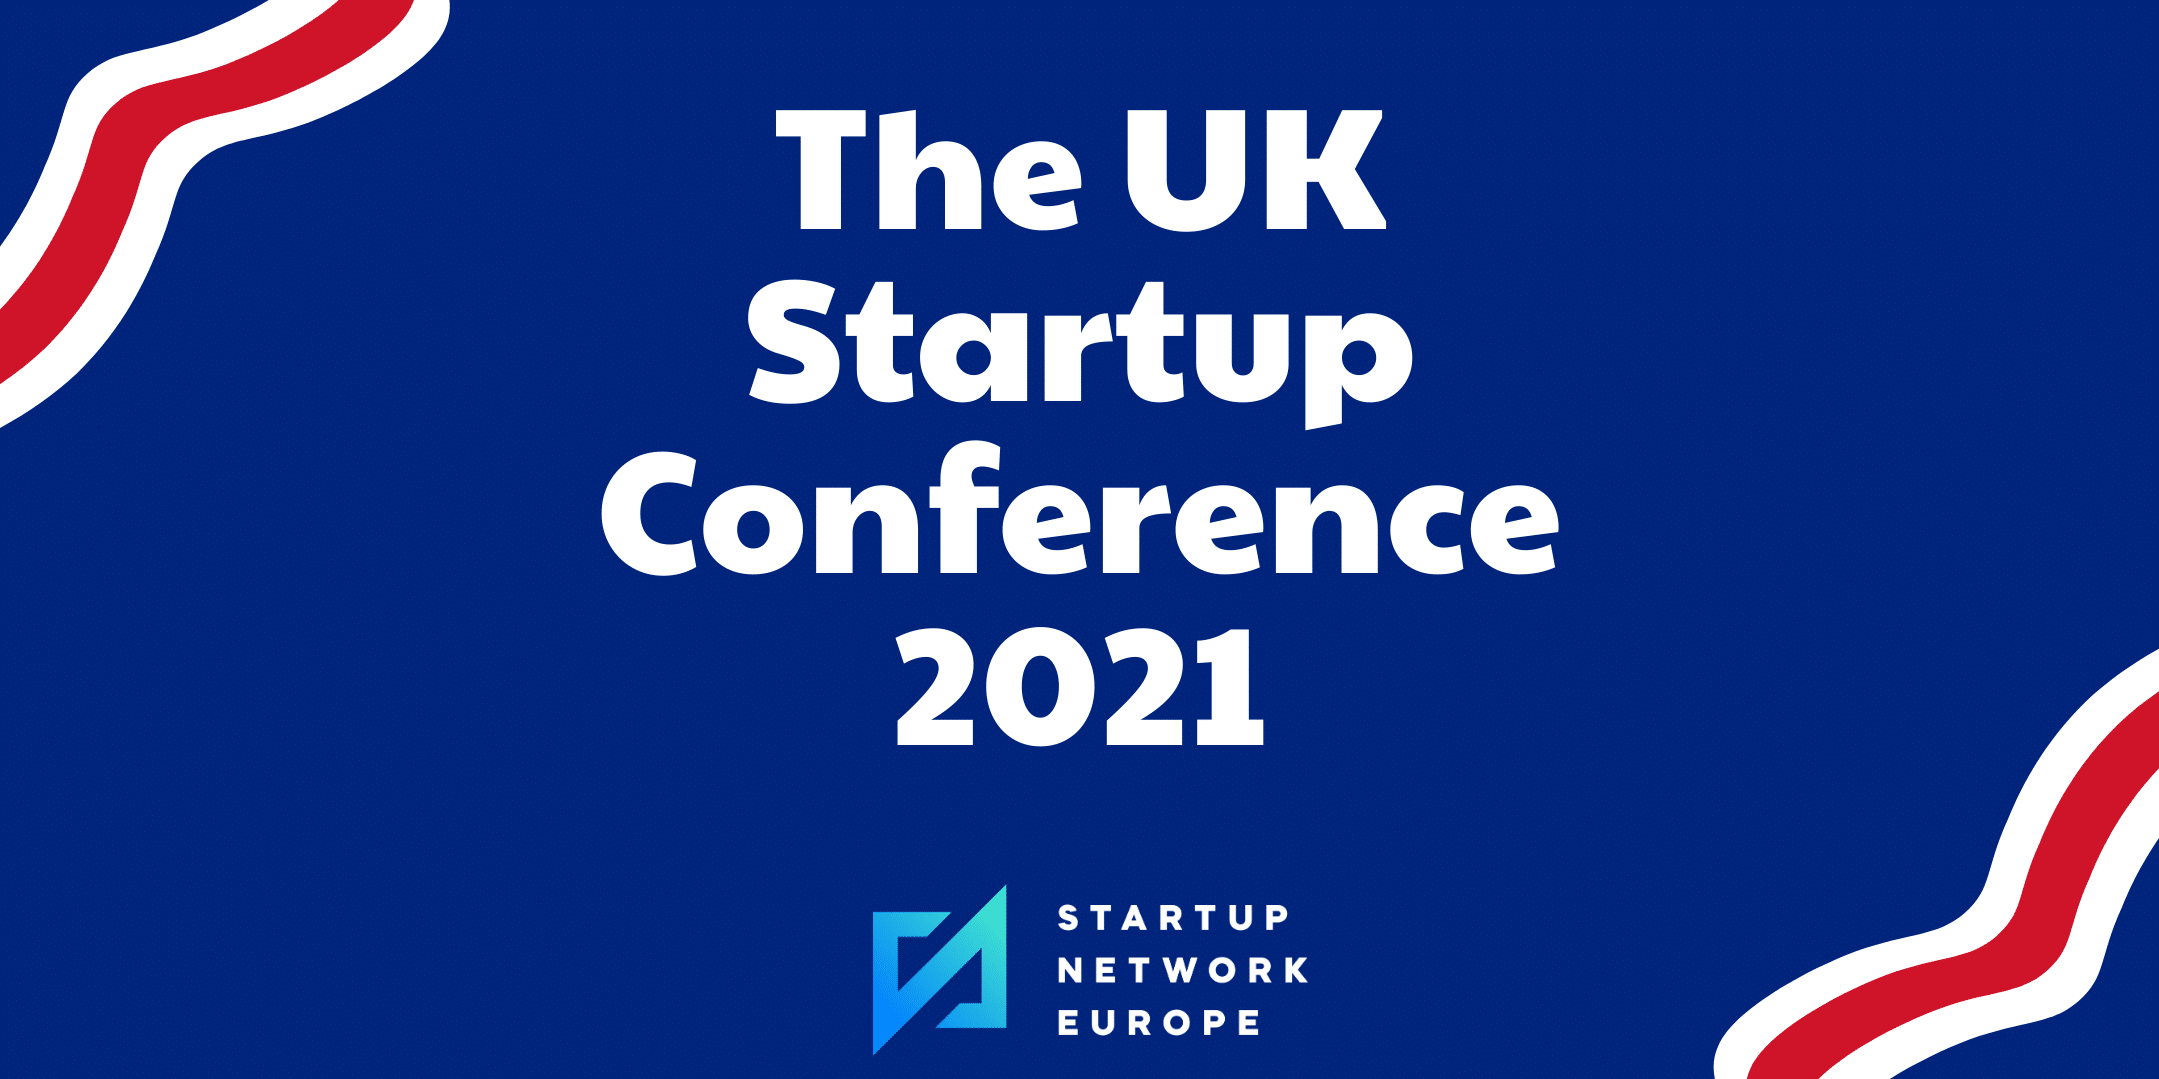 The UK Startup Conference 2021